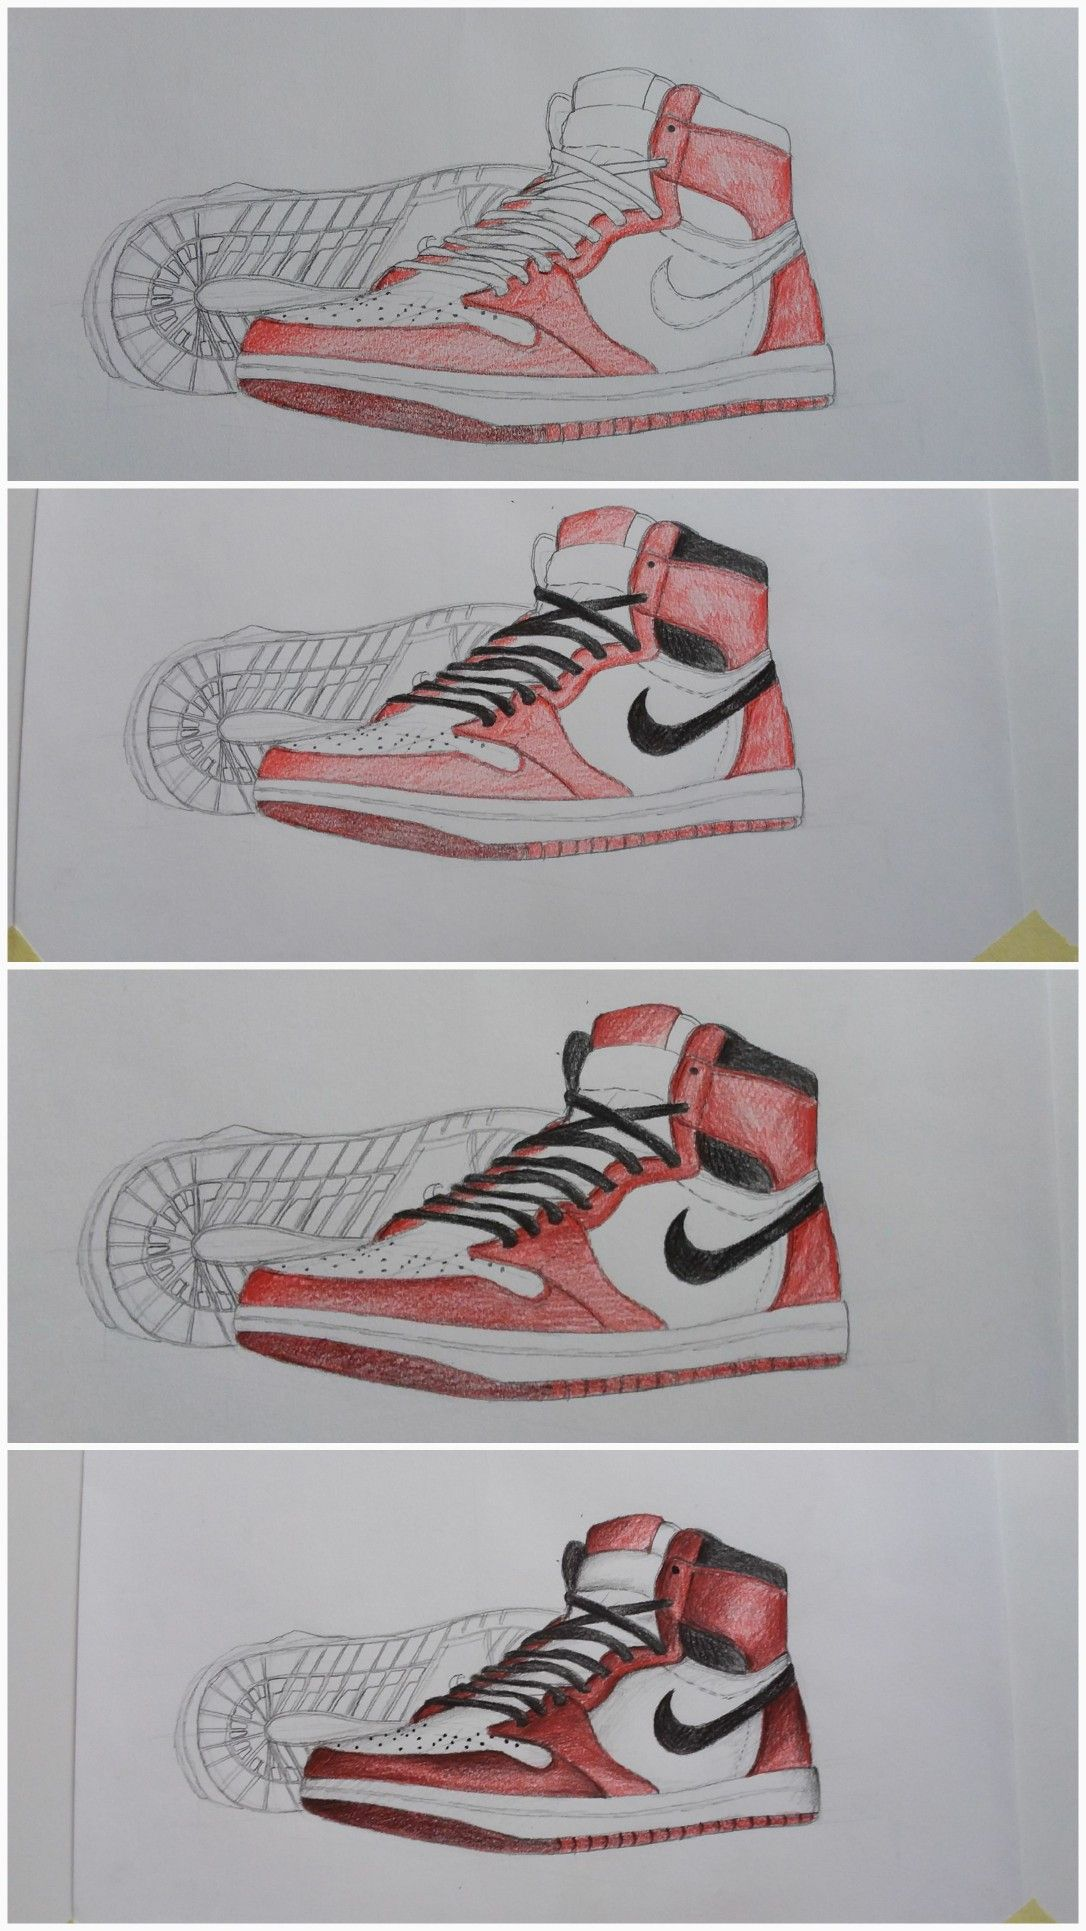 Nike shoes drawing pencil colors》 in 2019